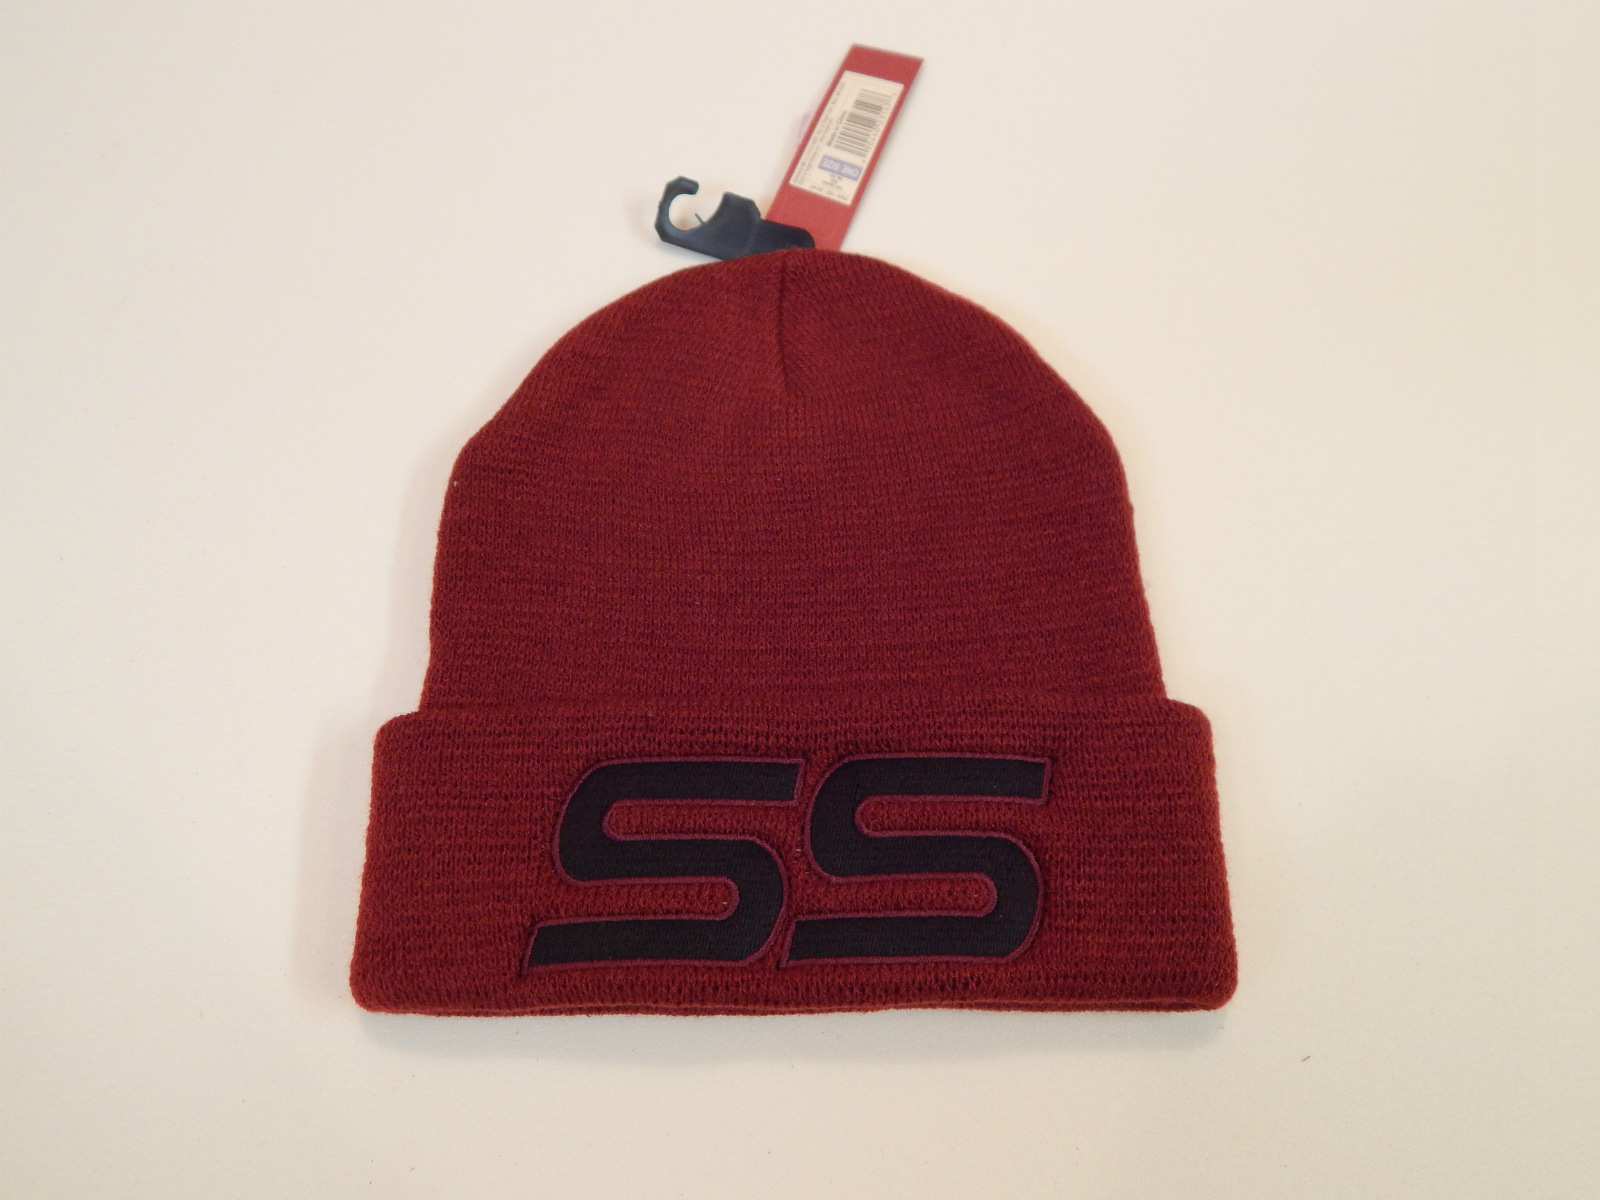 Monte Carlo SS 1986 Maroon Beanie Hat with SS log